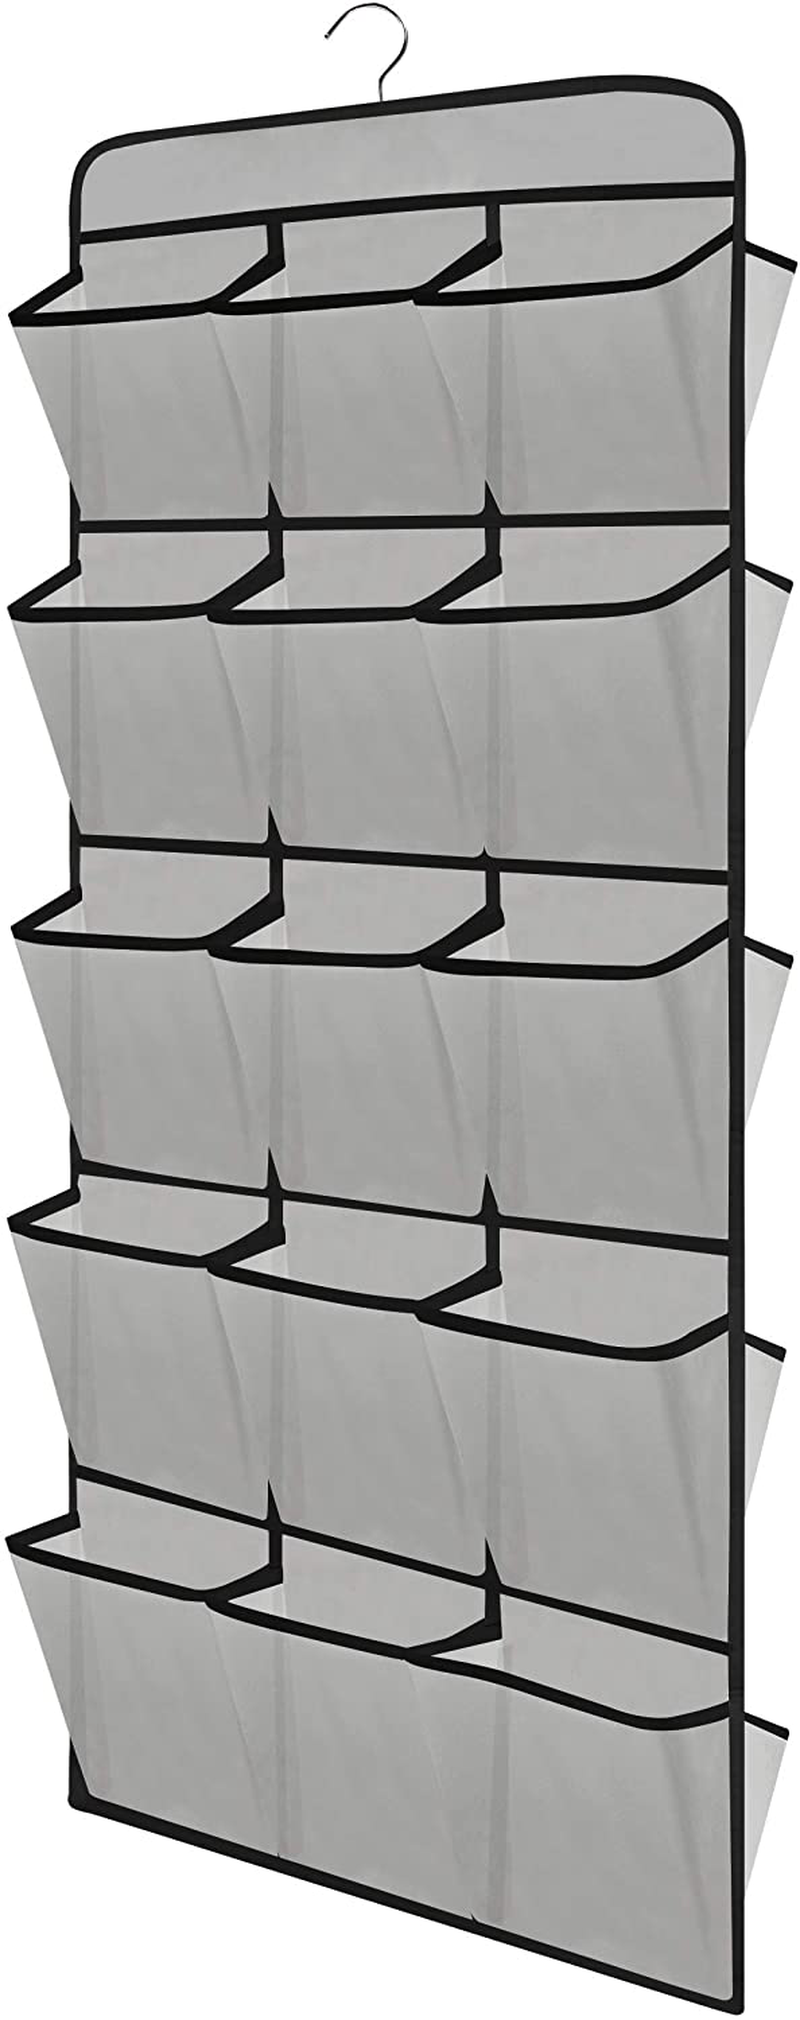 "coastal rose Hanging Shoe Organizer for Closet, Dual Sided 30 Large Pockets Hanging Shoe Storage Shelves with Rotating Hanger, 44.5"" L×17.9"" W (Grey)"